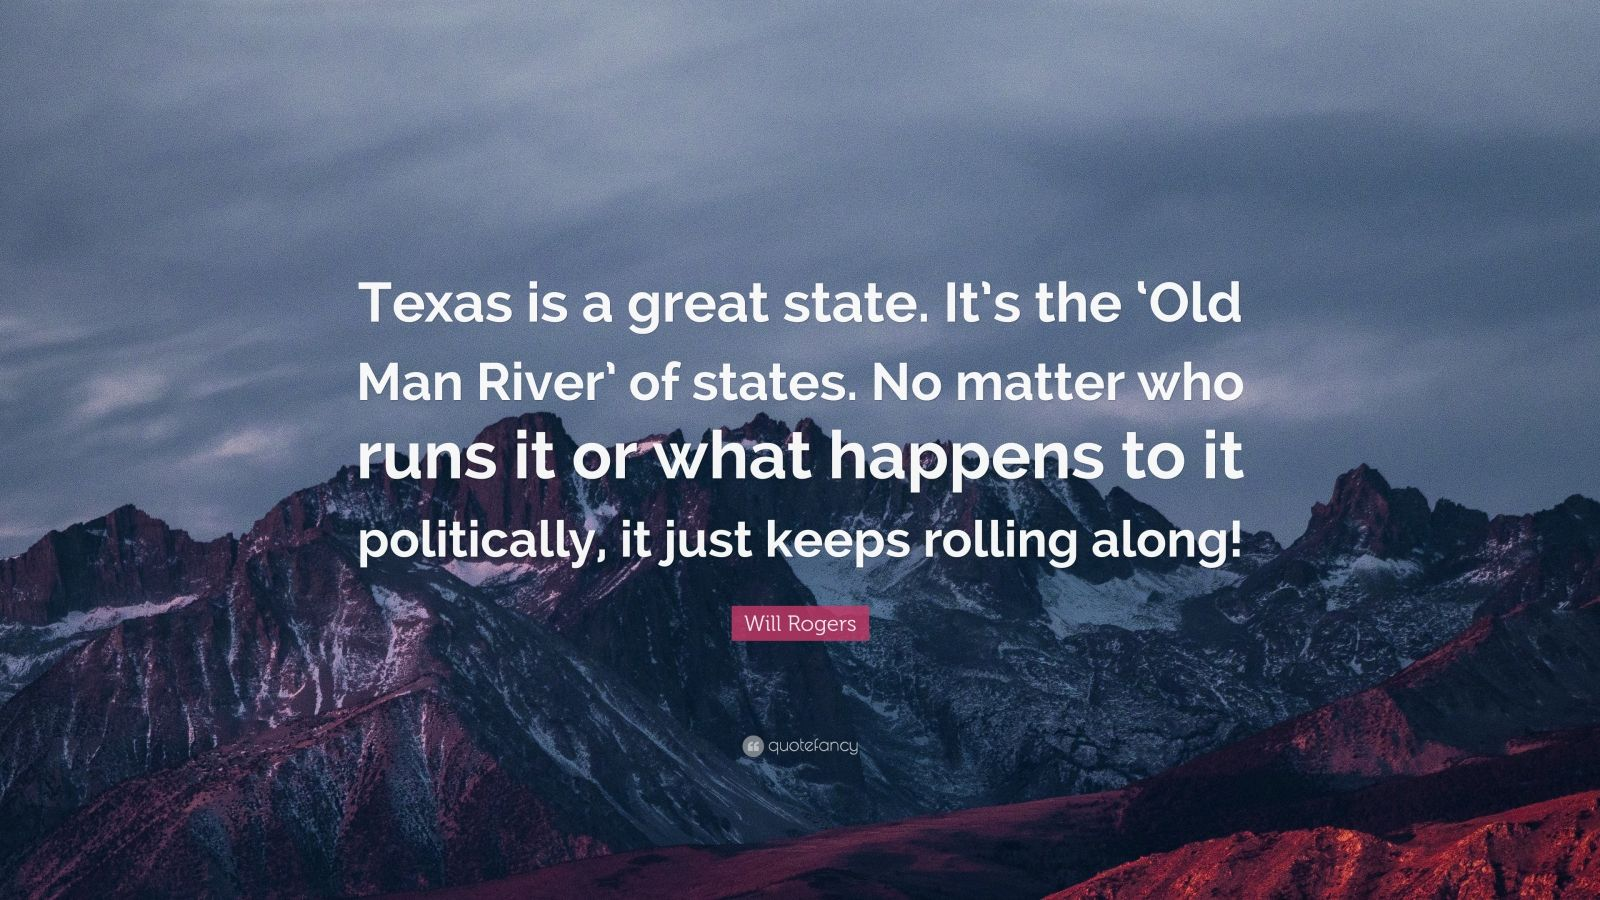 """Will Rogers Quote: """"Texas is a great state. It's the 'Old Man River' of states. No matter who runs it or what happens to it politically, it just keeps rolling along!"""""""